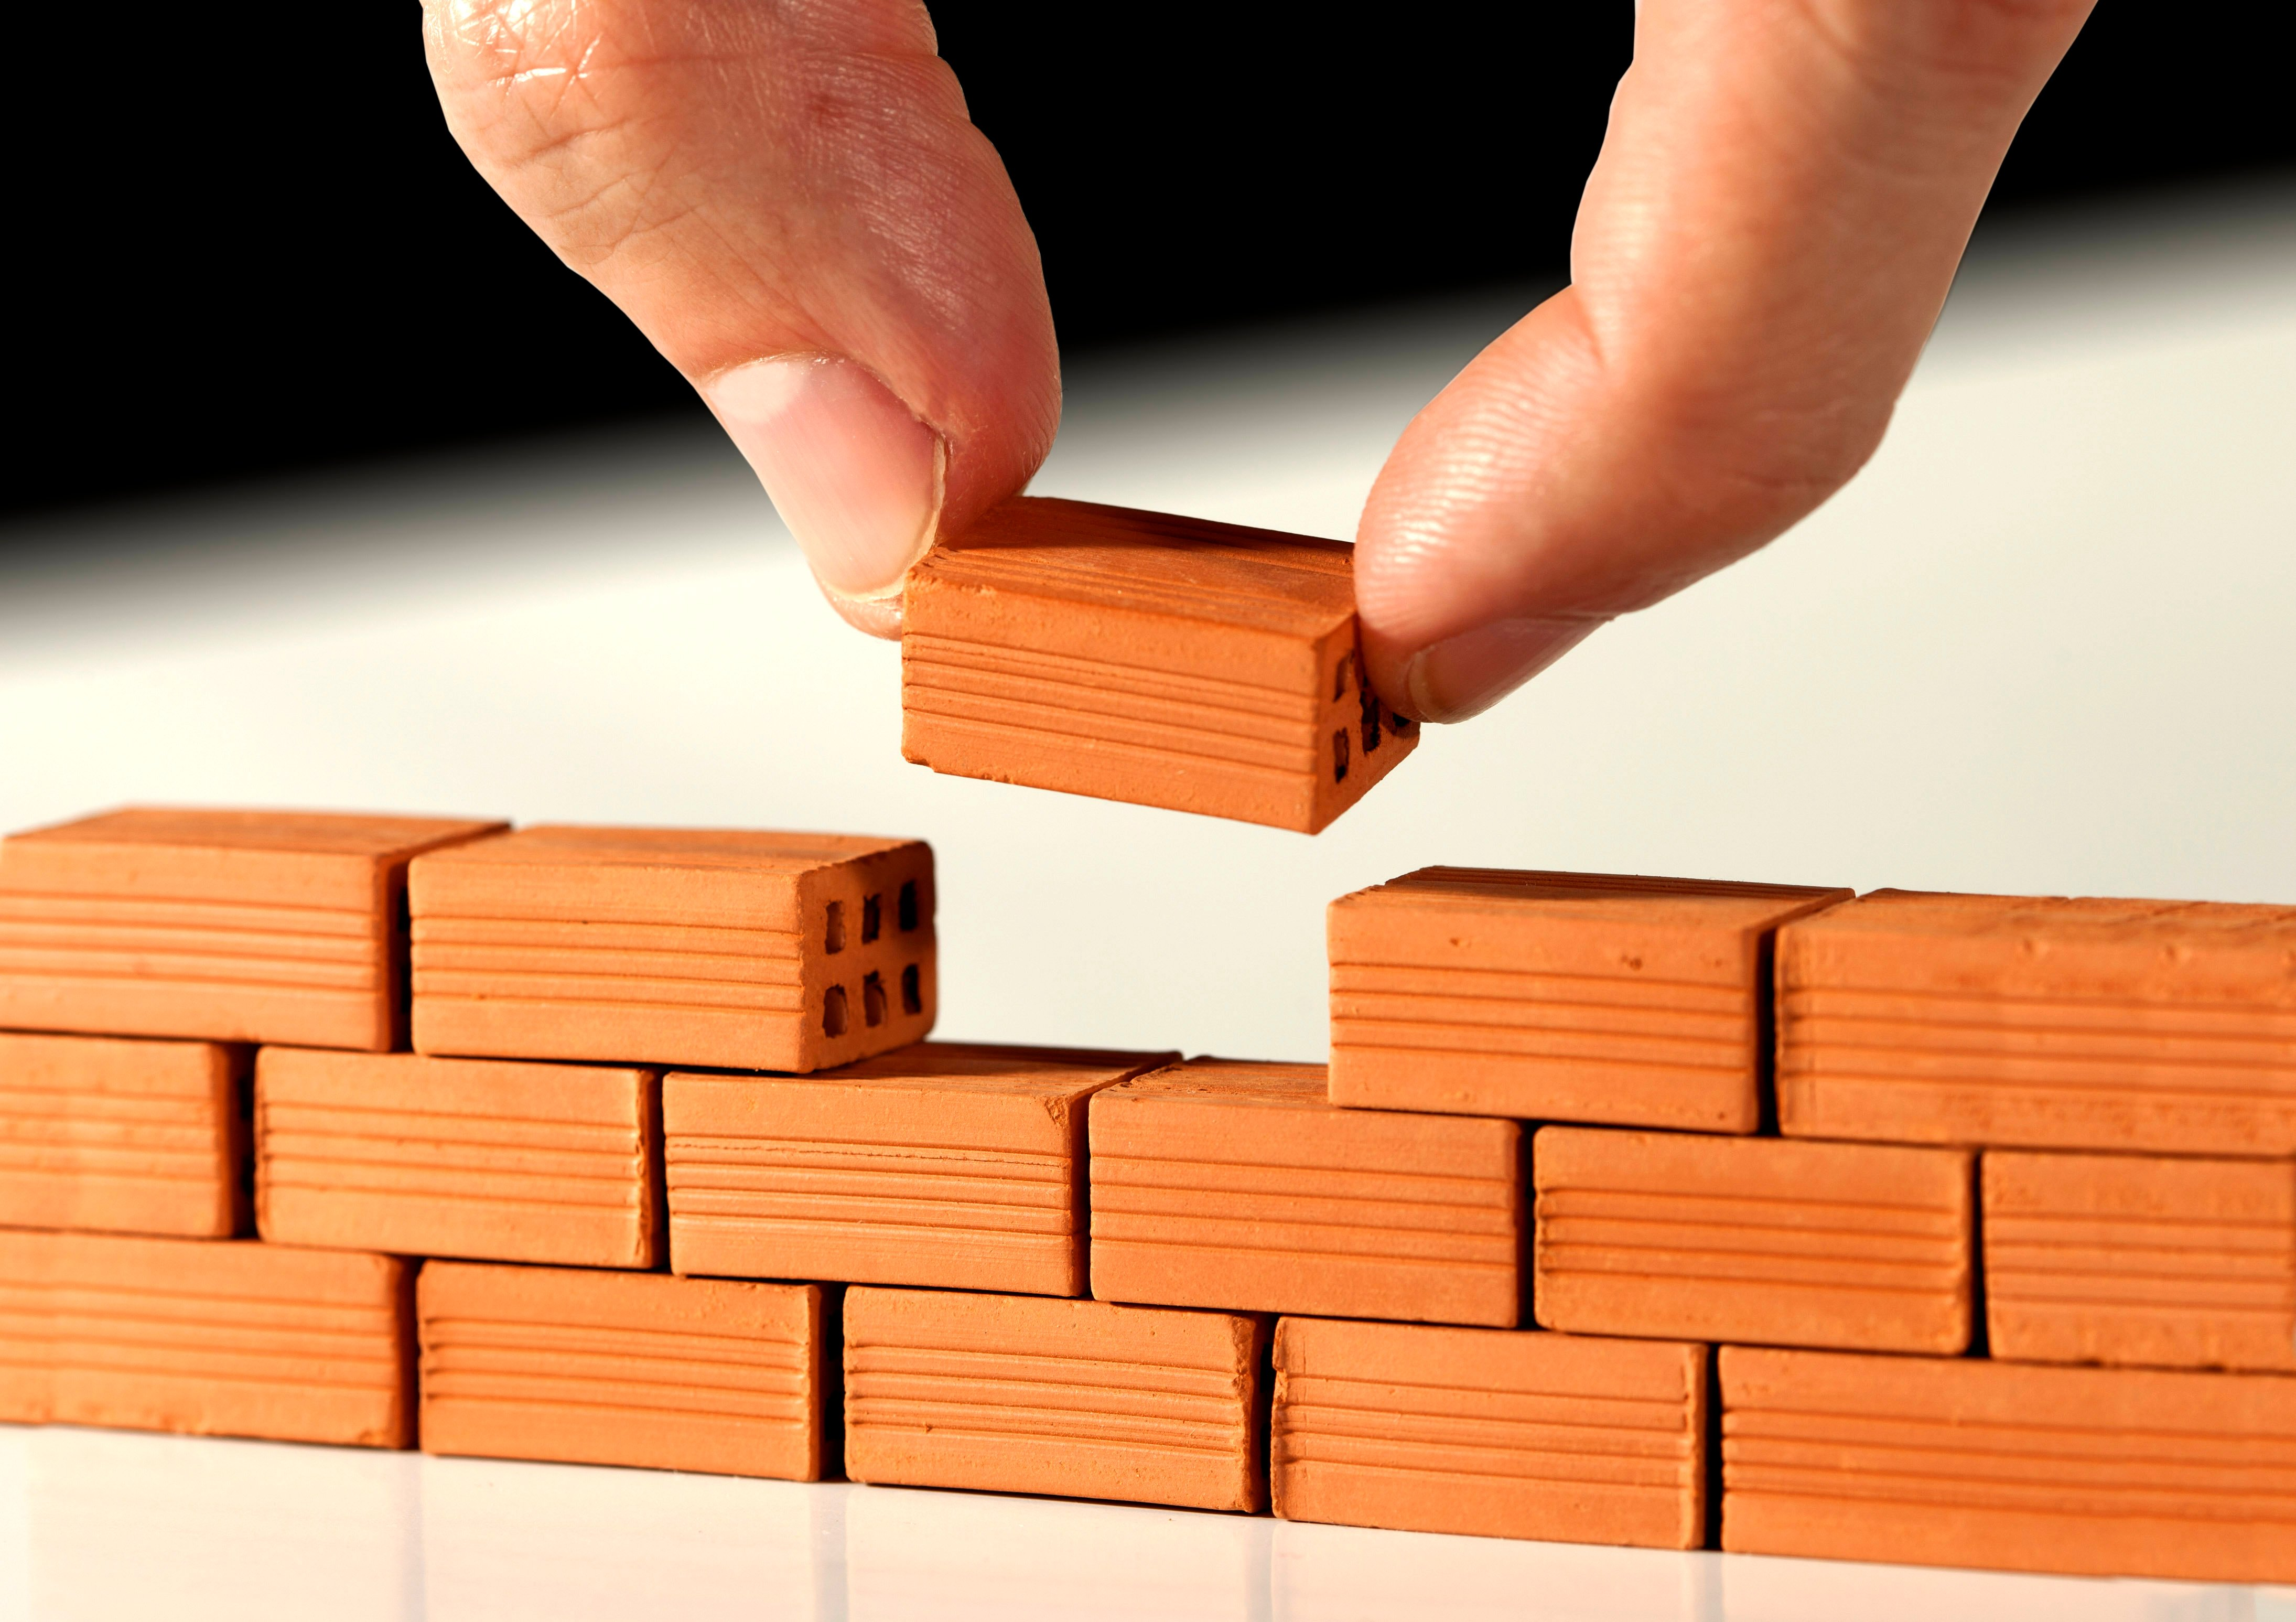 Small Business Firewalls: Choosing the right firewall for your needs